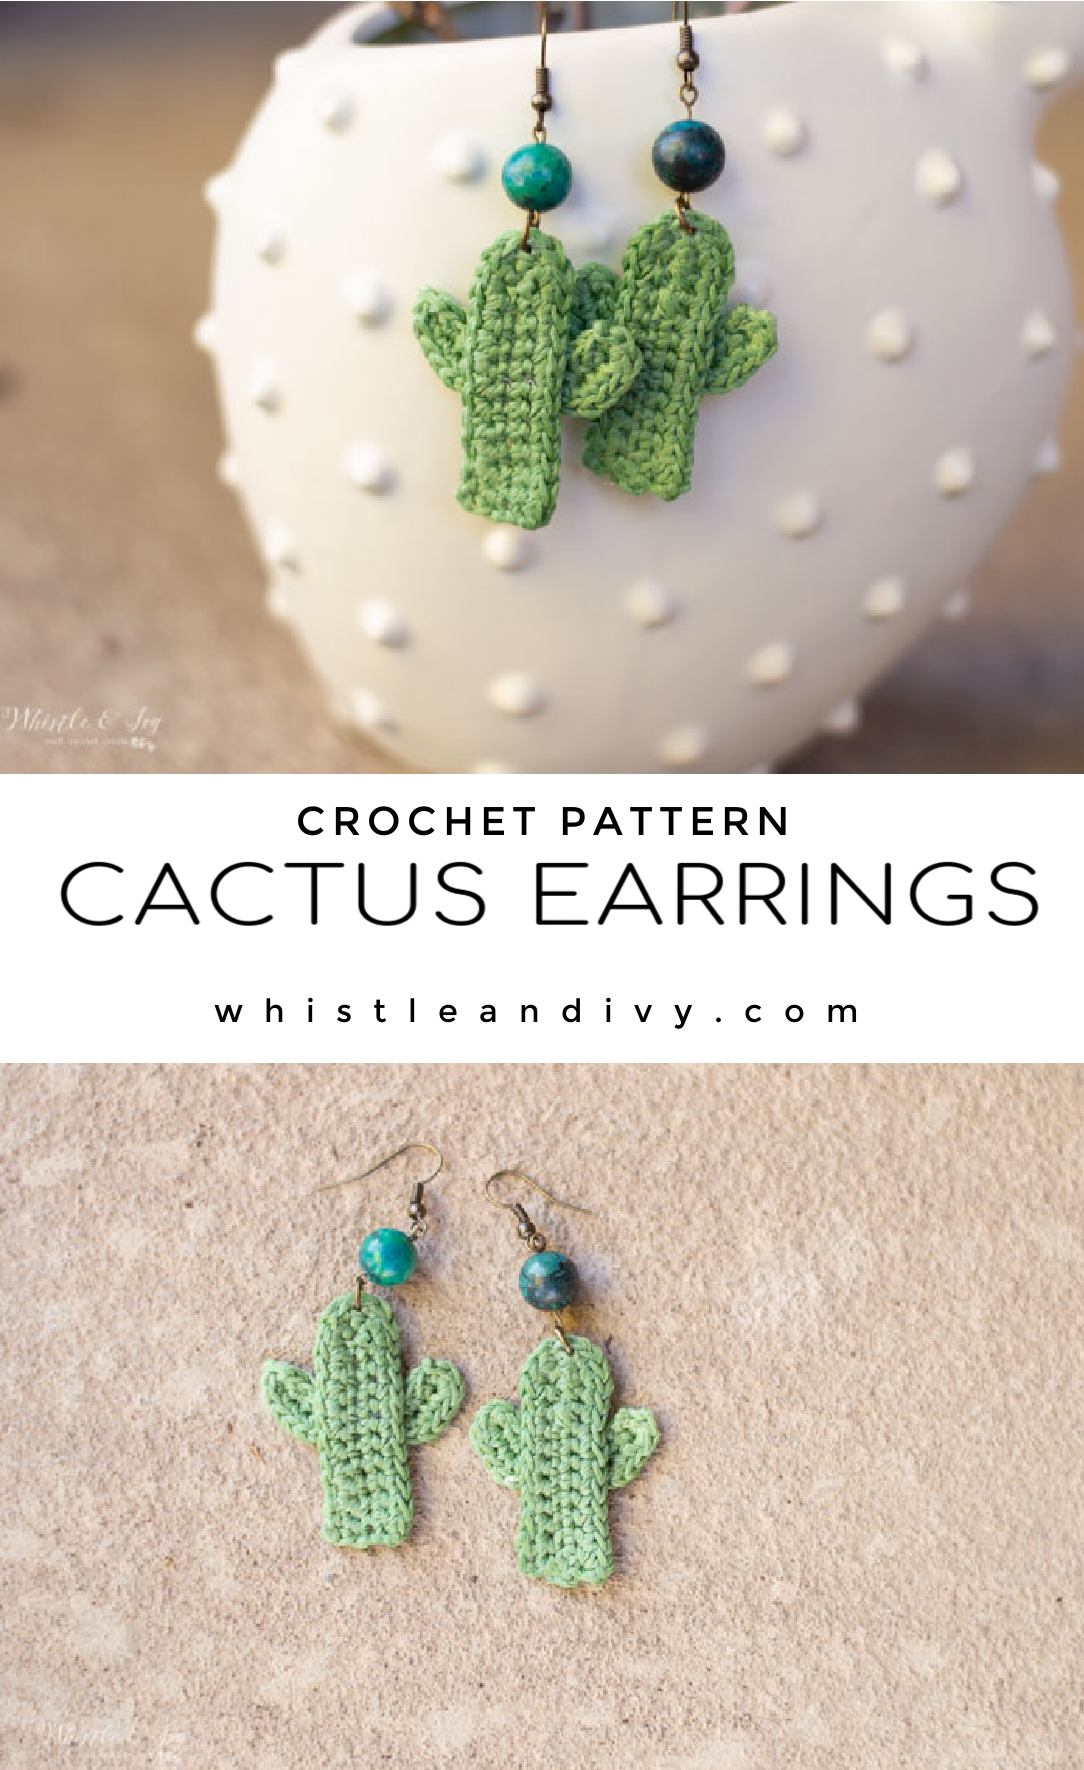 crochet cactus earrings cute diy earrings crochet pattern